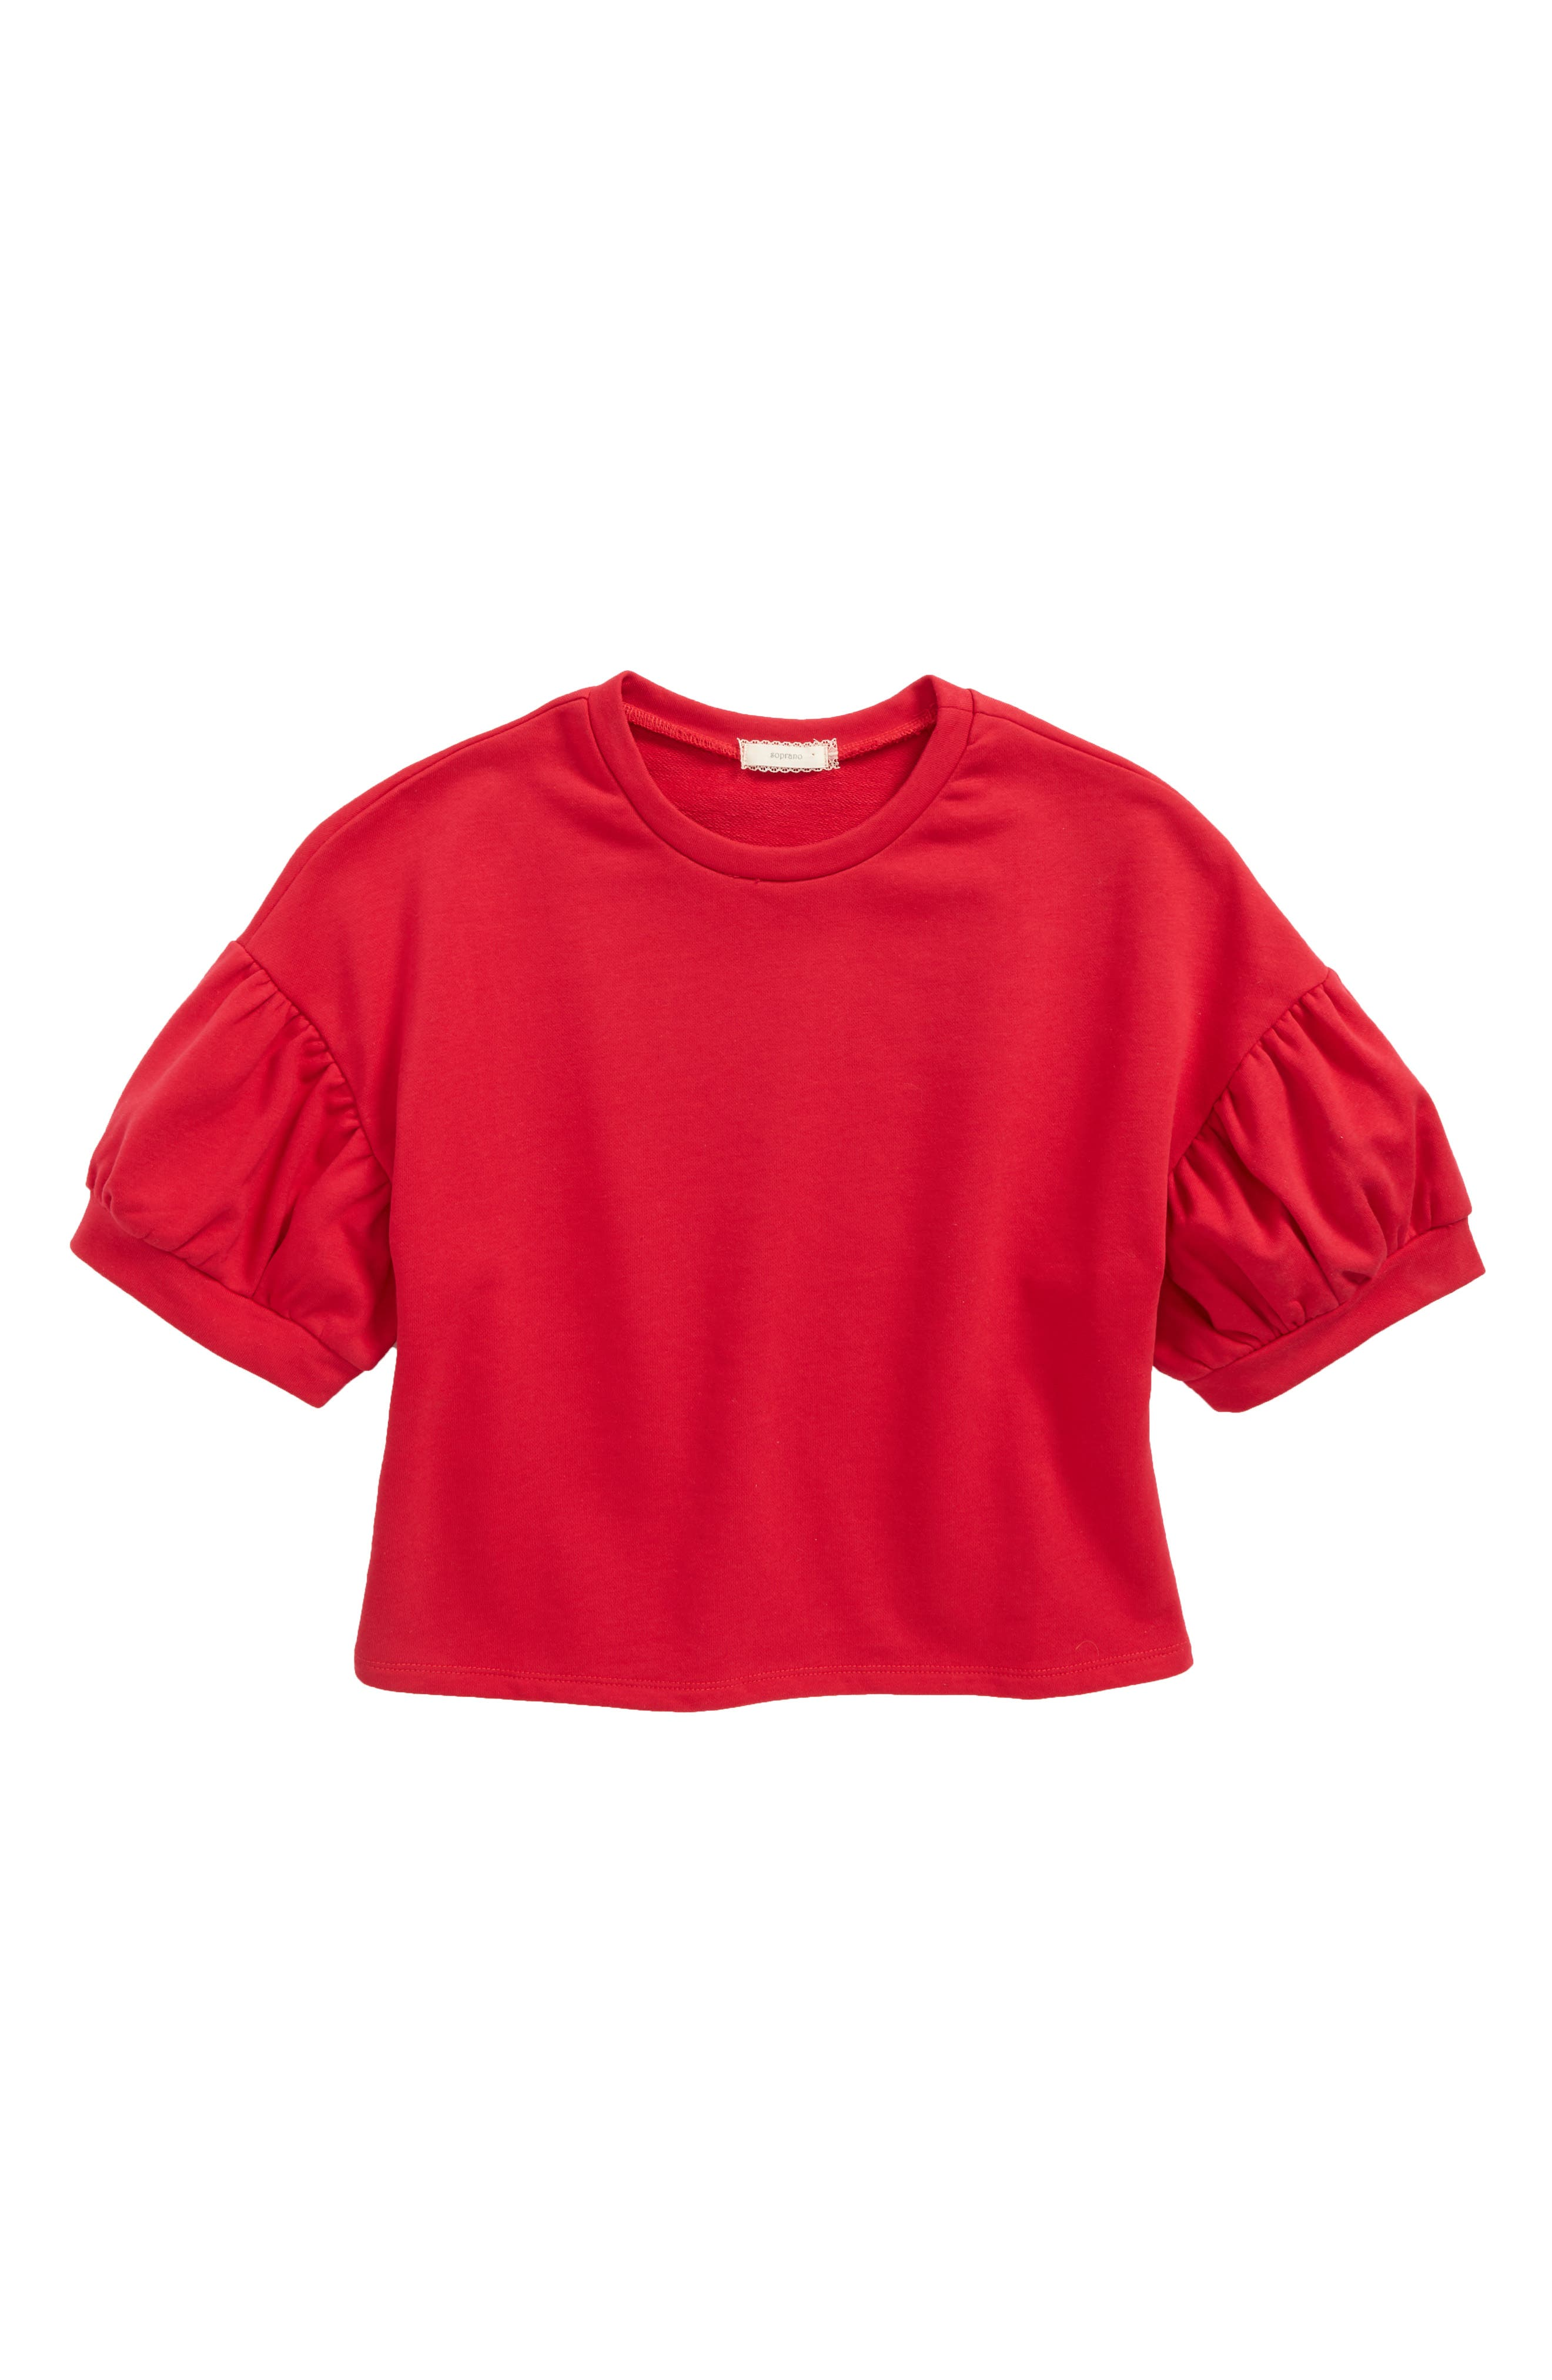 Lantern Sleeve Top,                         Main,                         color, Red